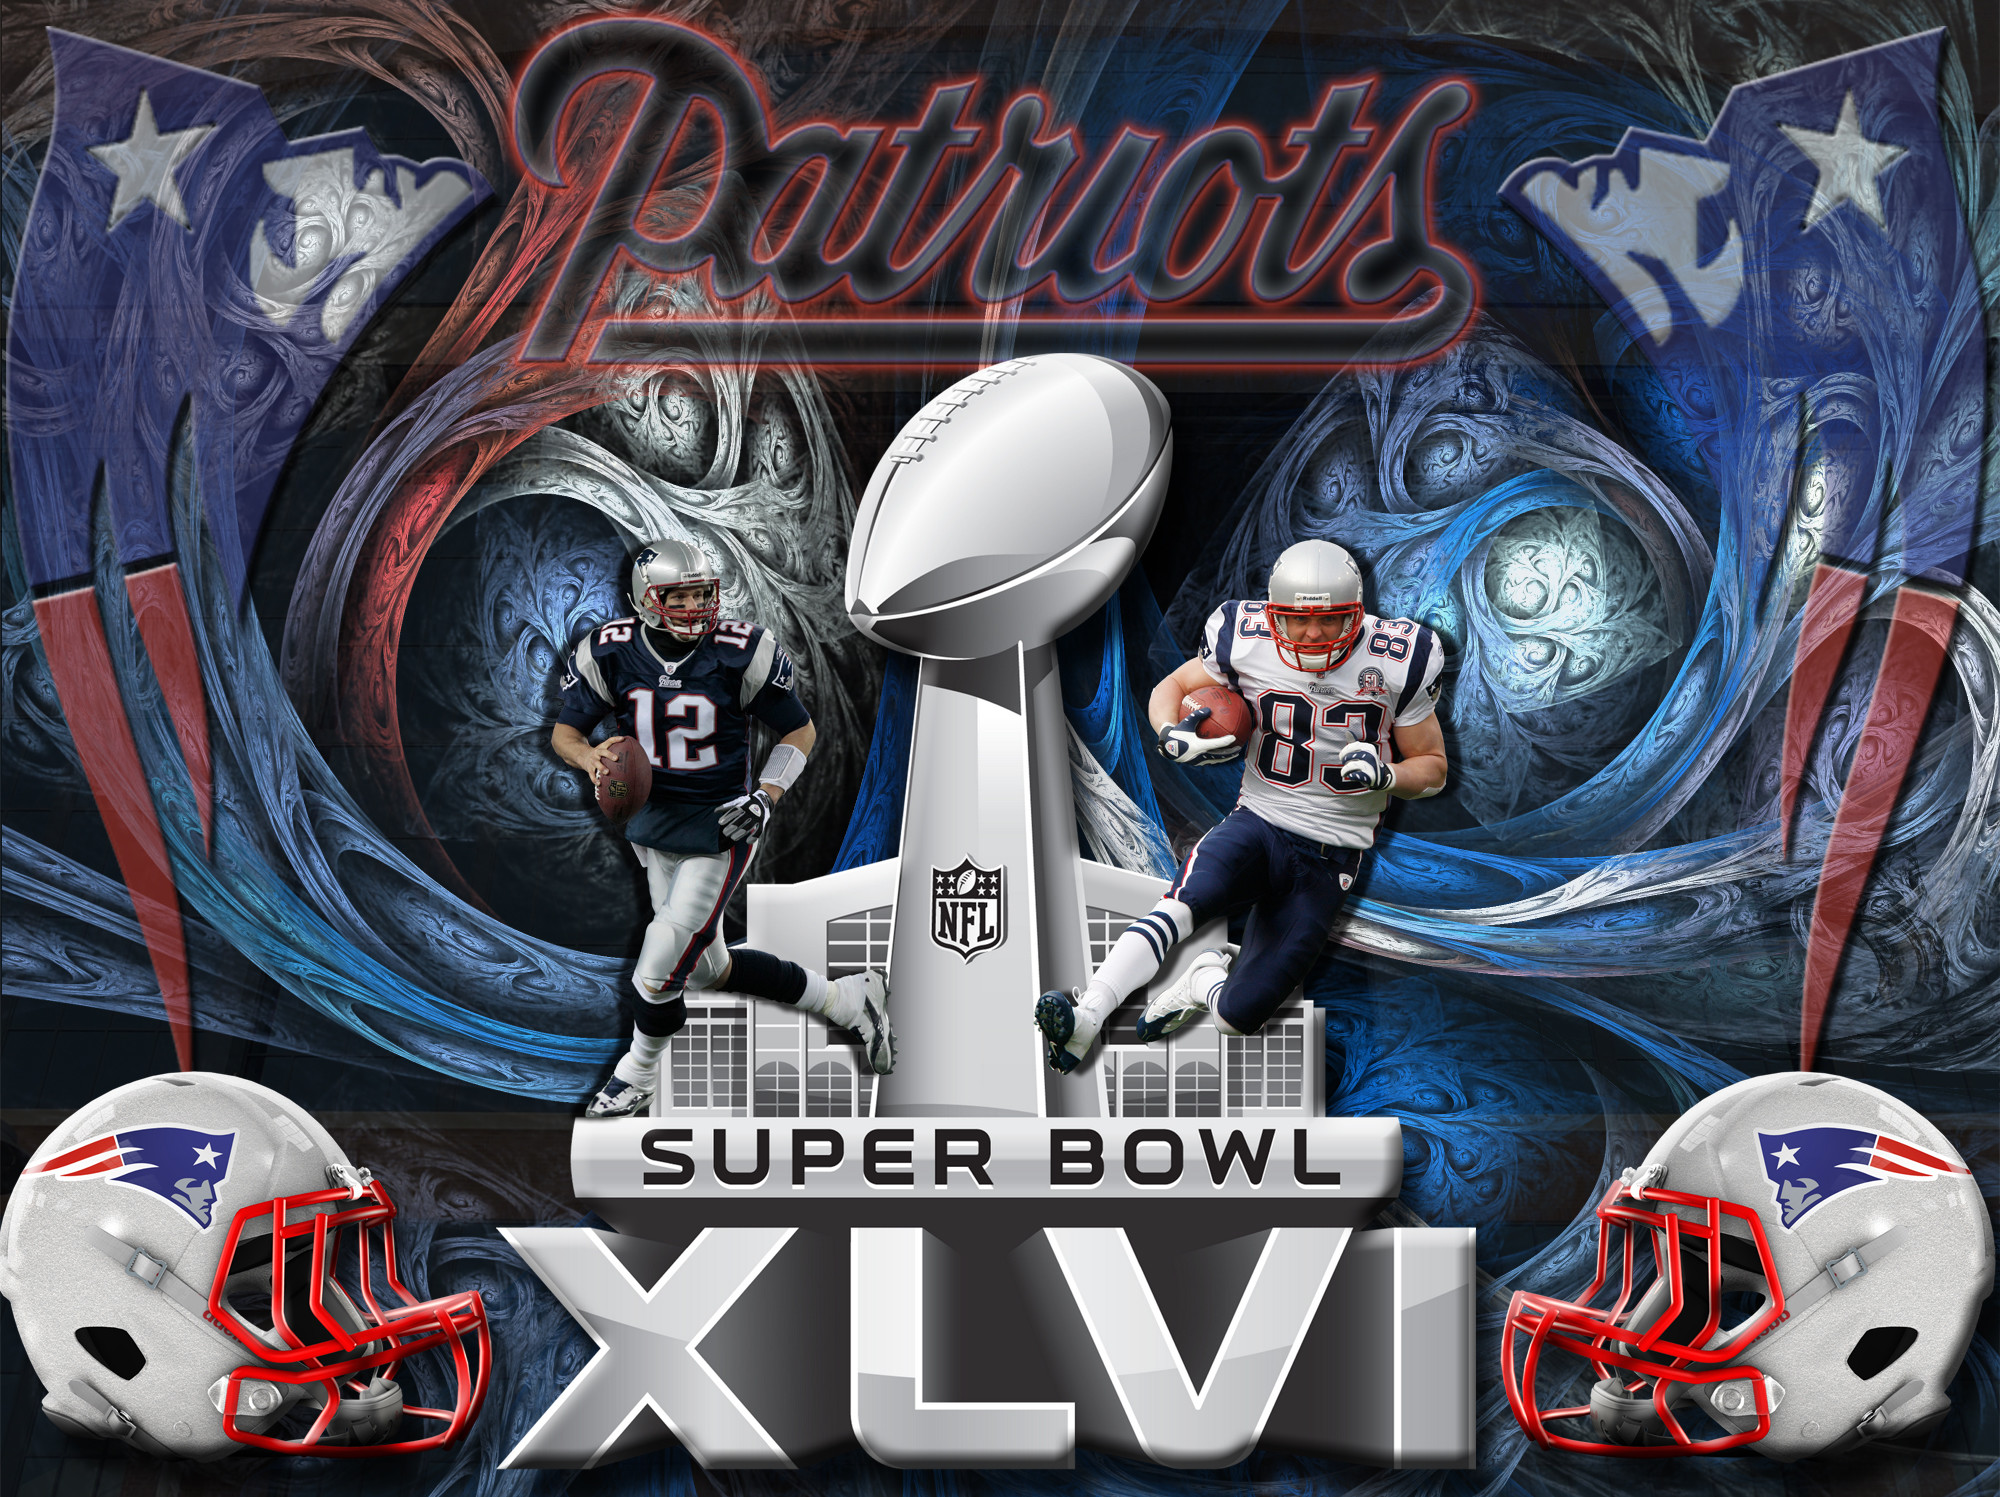 2000x1497 4x3 Alternate style | 5x4 Standard | 16x9 Widescreen | 16x10 Widescreen New  England Patriots Super Bowl XLVI Wallpaper ...